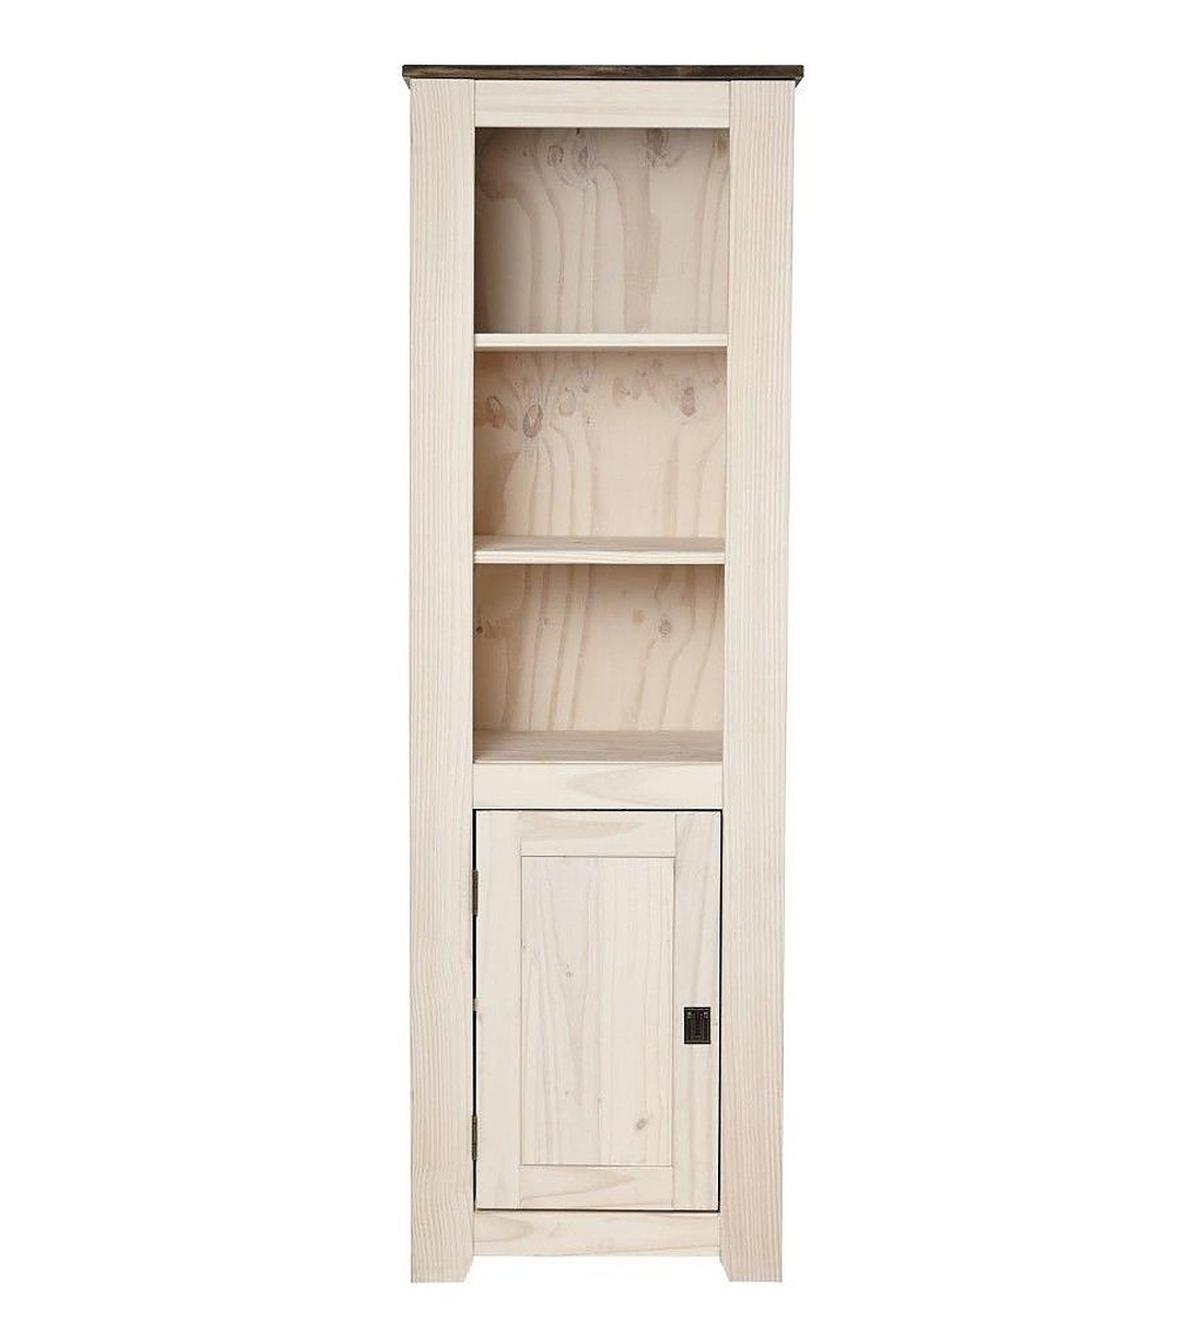 Solid Wood Bookcase Cabinet Display Unit